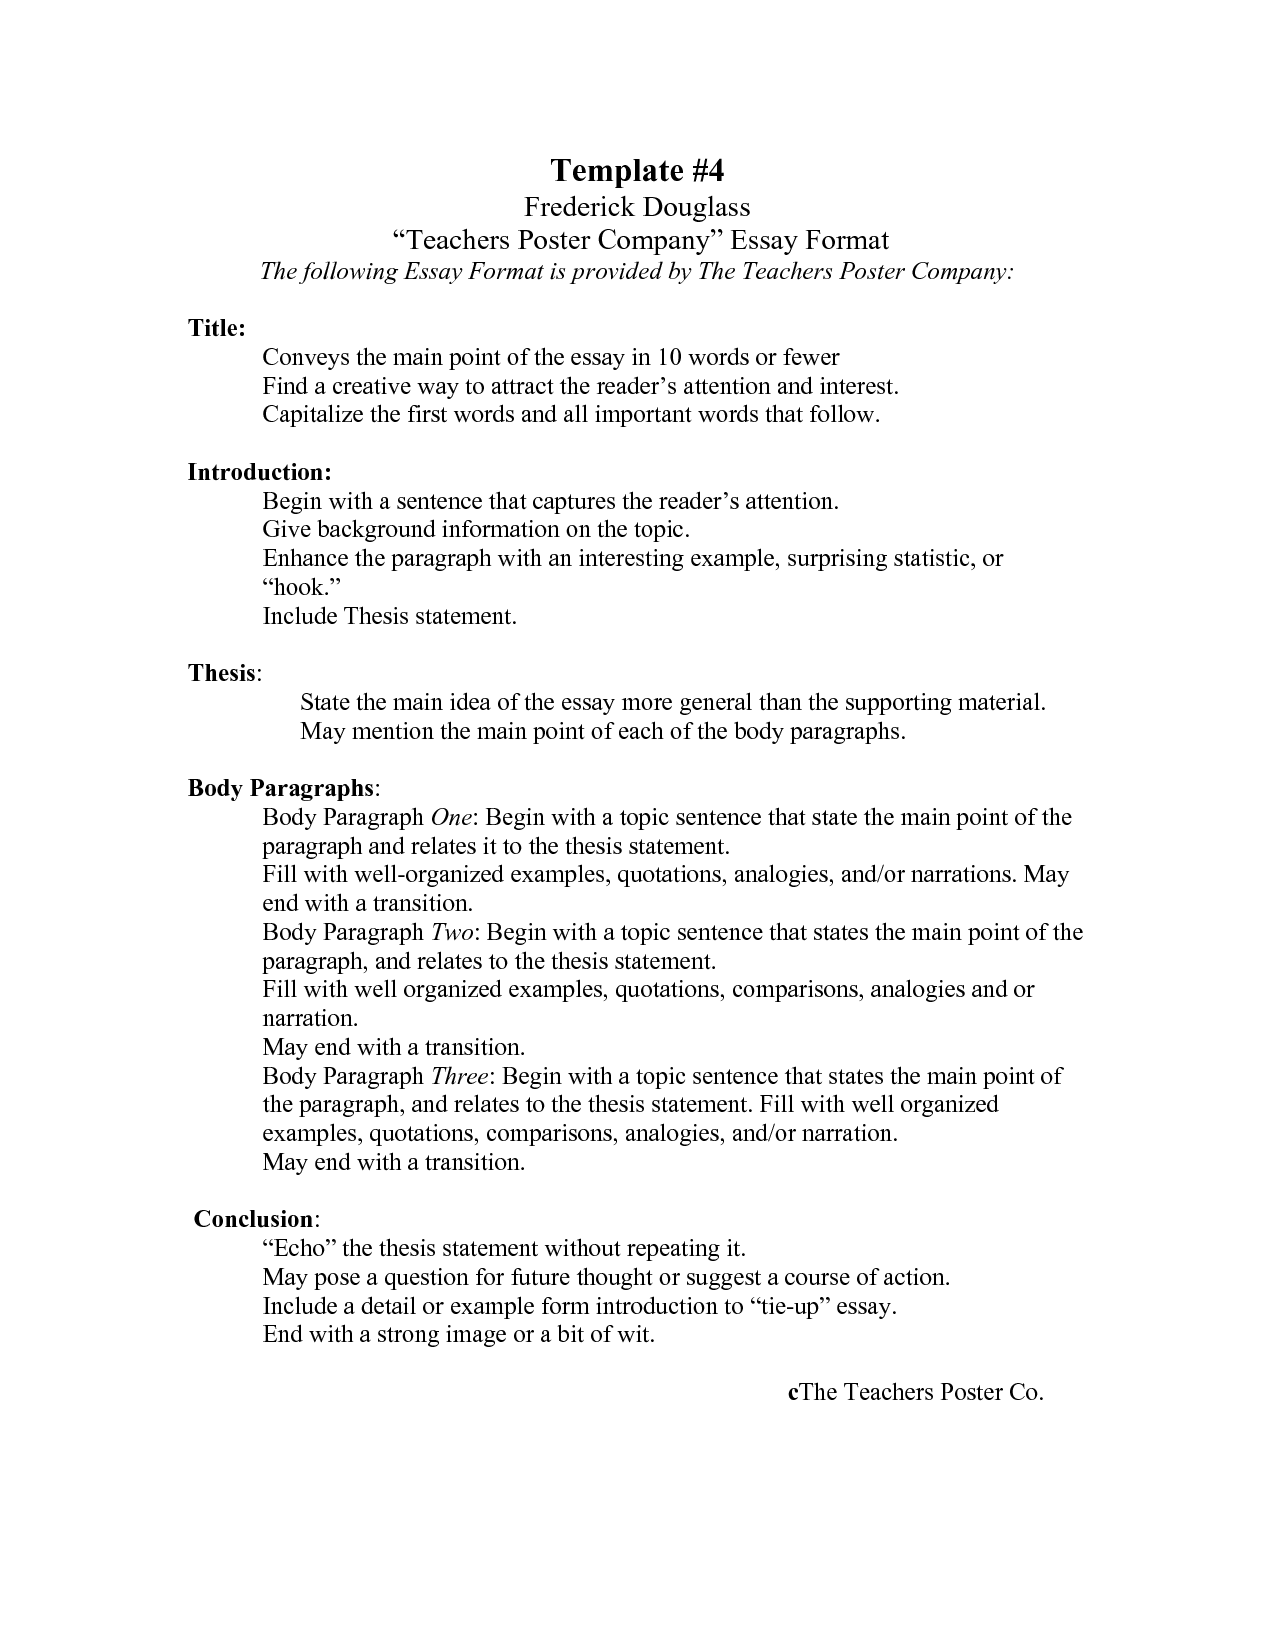 Population Essay In English Poster Company Essay Format The Following Essay Format Is P Term Paper Essay also Persuasive Essay Samples For High School Standard Essay Format   Poster Company Essay Format The  Essays On Different Topics In English